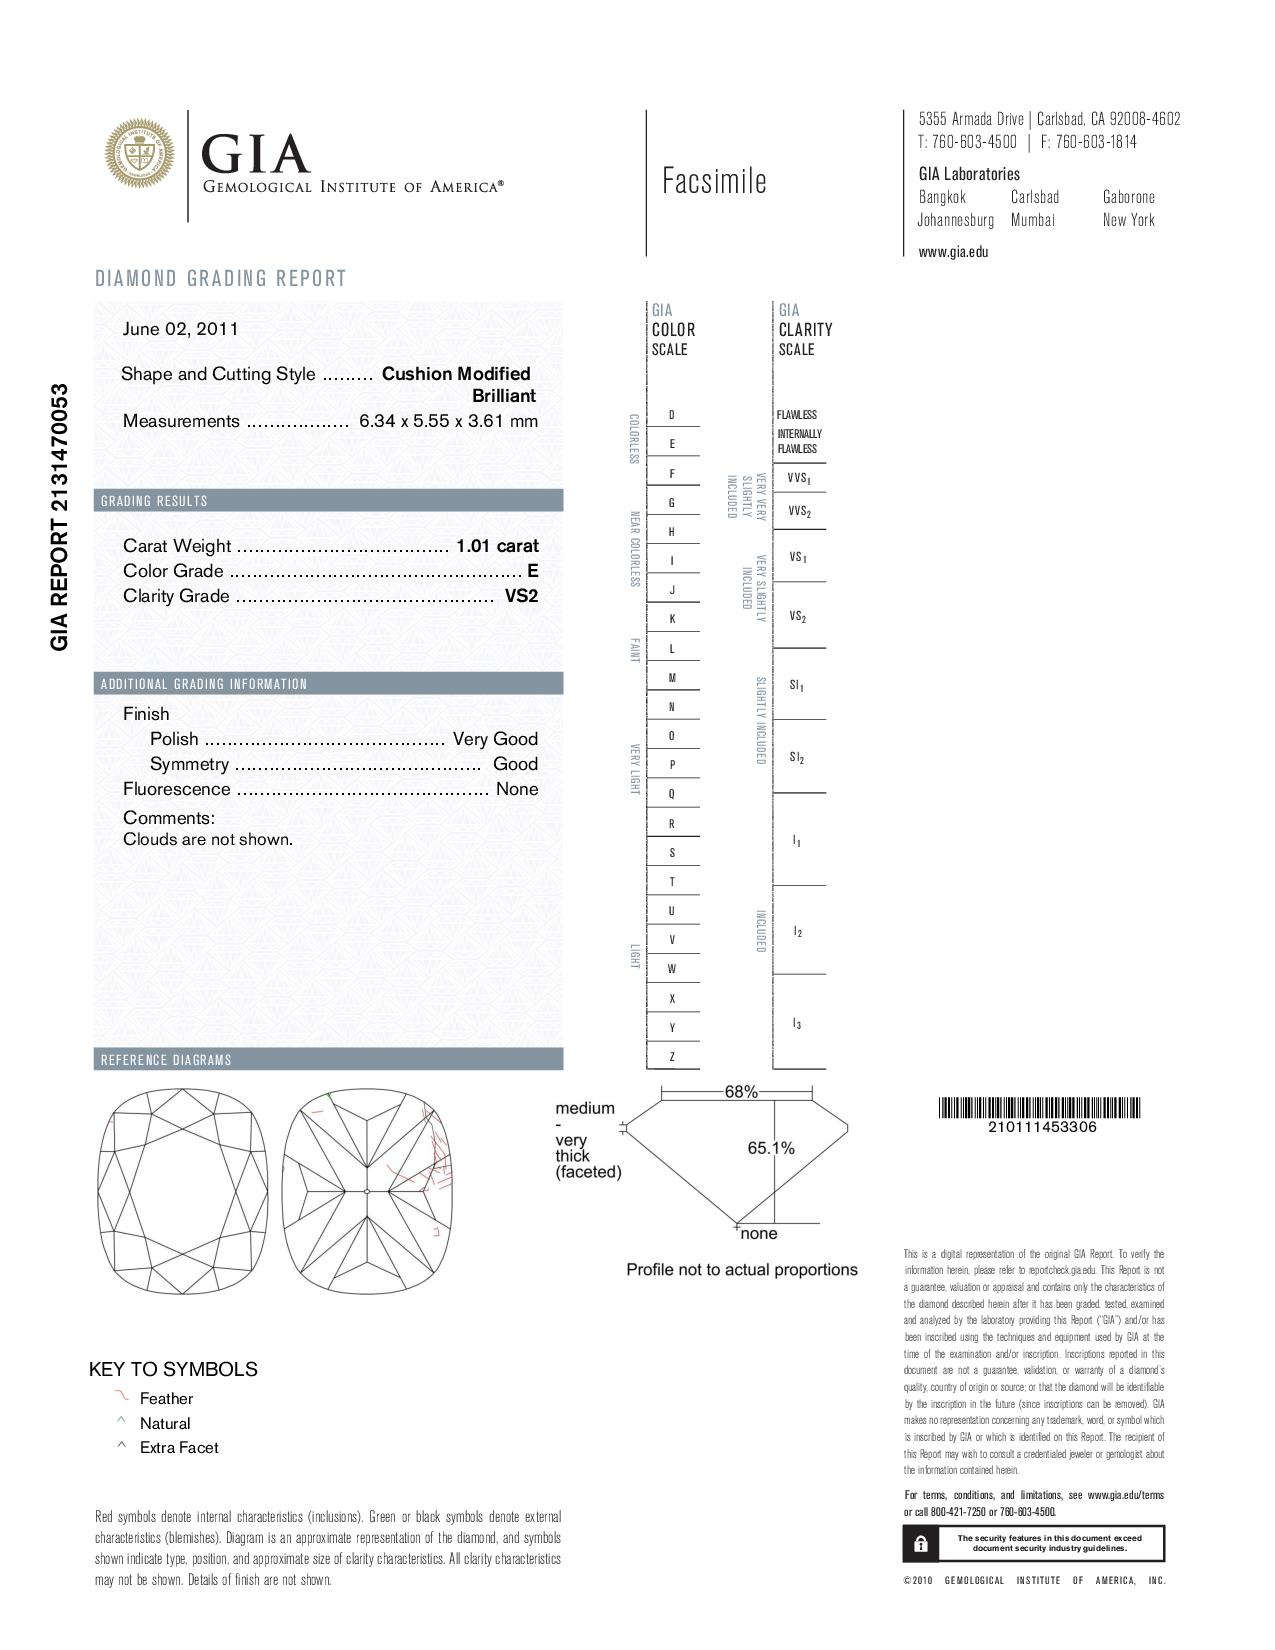 This is a 1.01 carat cushion shape, E color, VS2 clarity natural diamond accompanied by a GIA grading report.